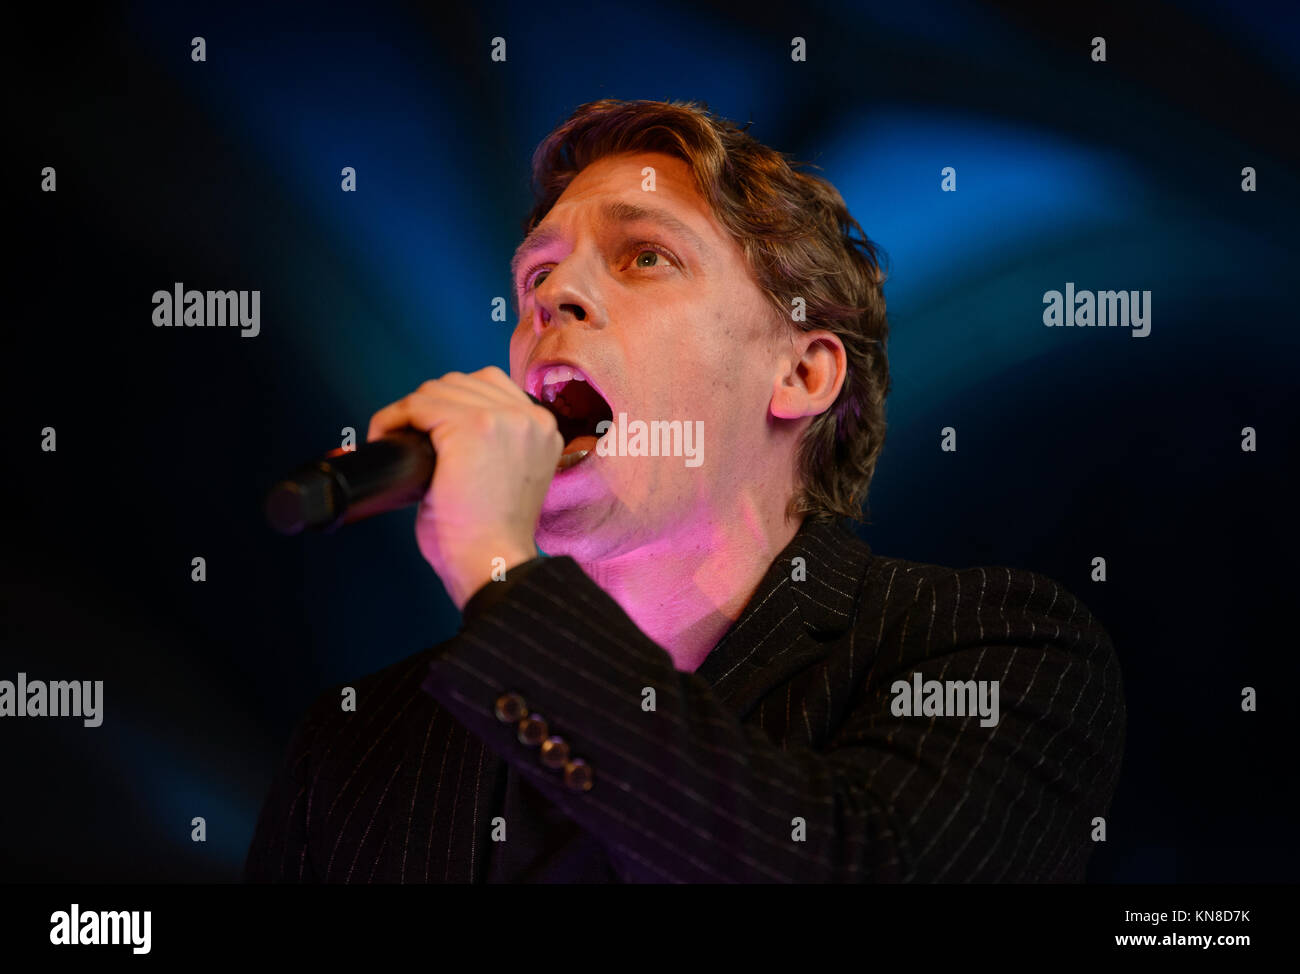 Stuttgart, Germany. 11th Dec, 2017. Musical performer David Jakobs as the hunchbacked bell ringer Quasimodo singing - Stock Image